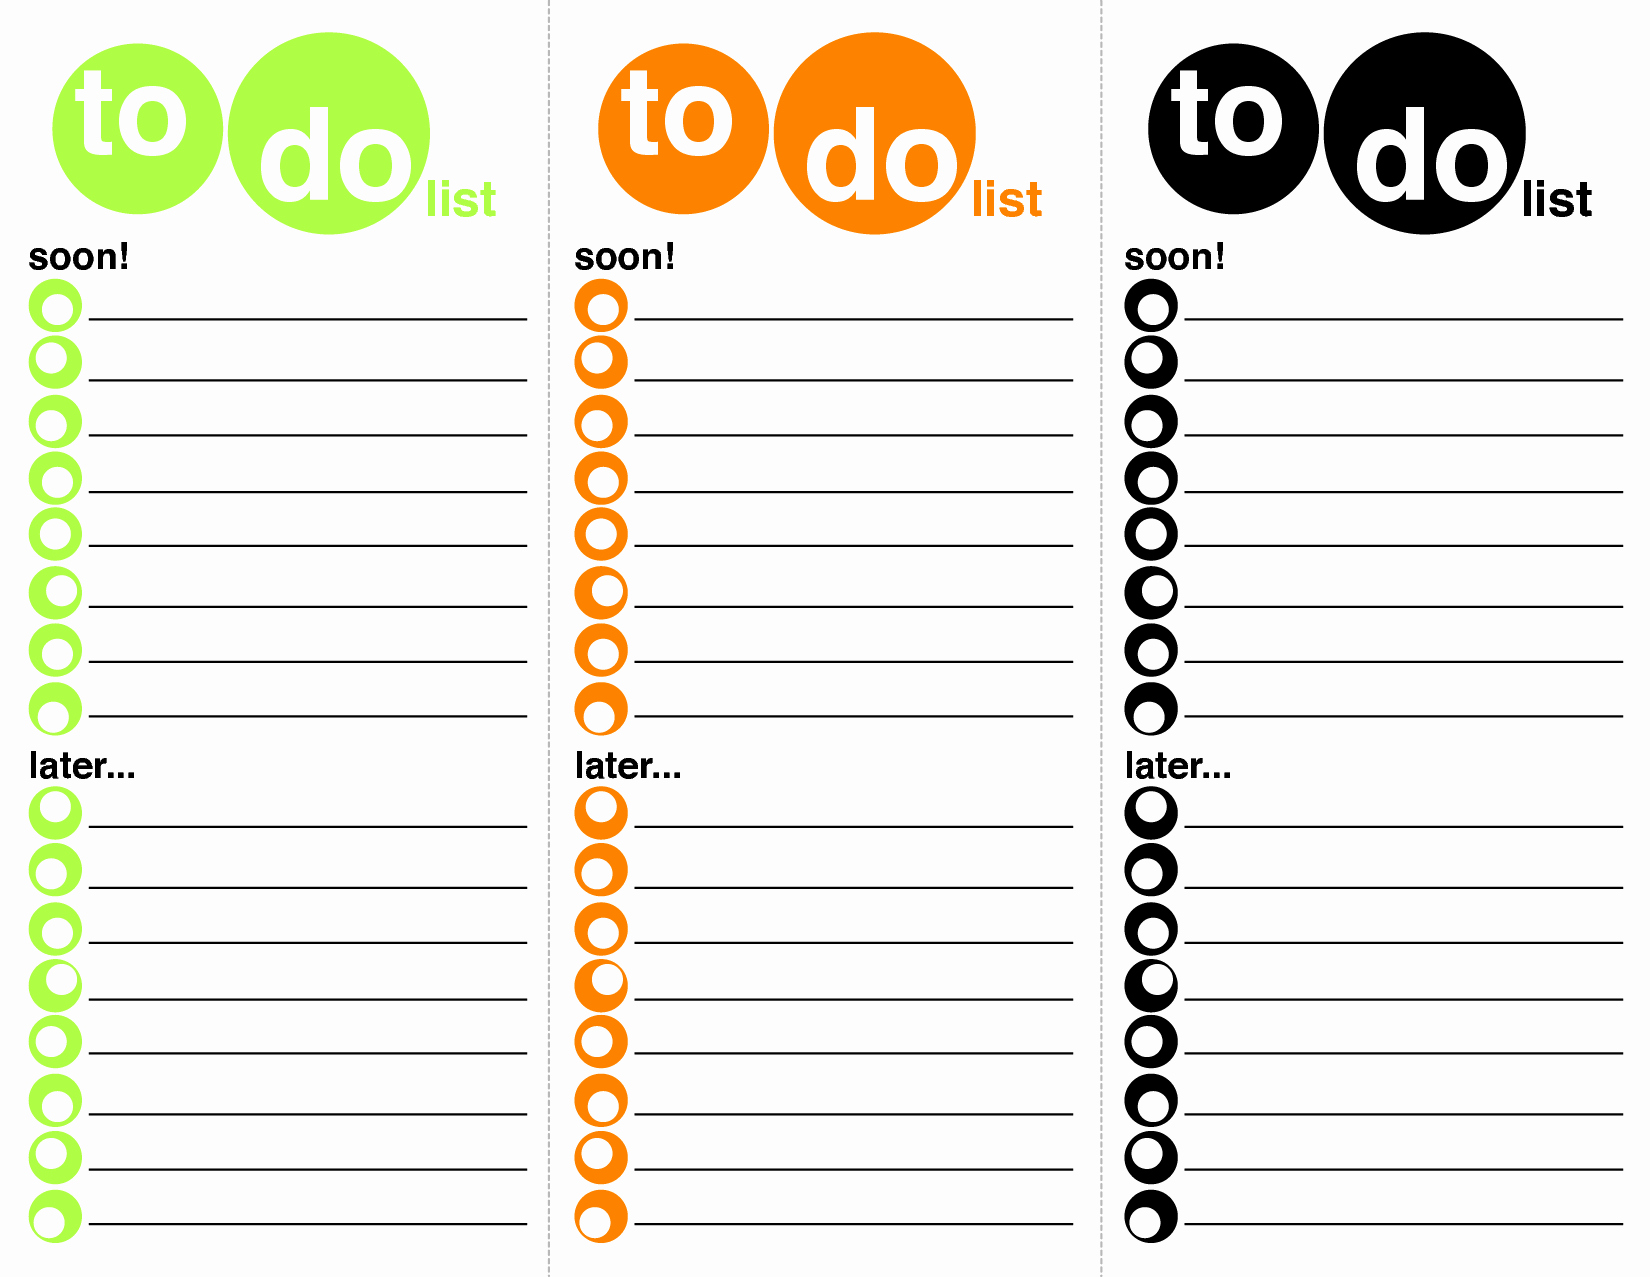 Things to Do List Template Beautiful 40 Printable to Do List Templates